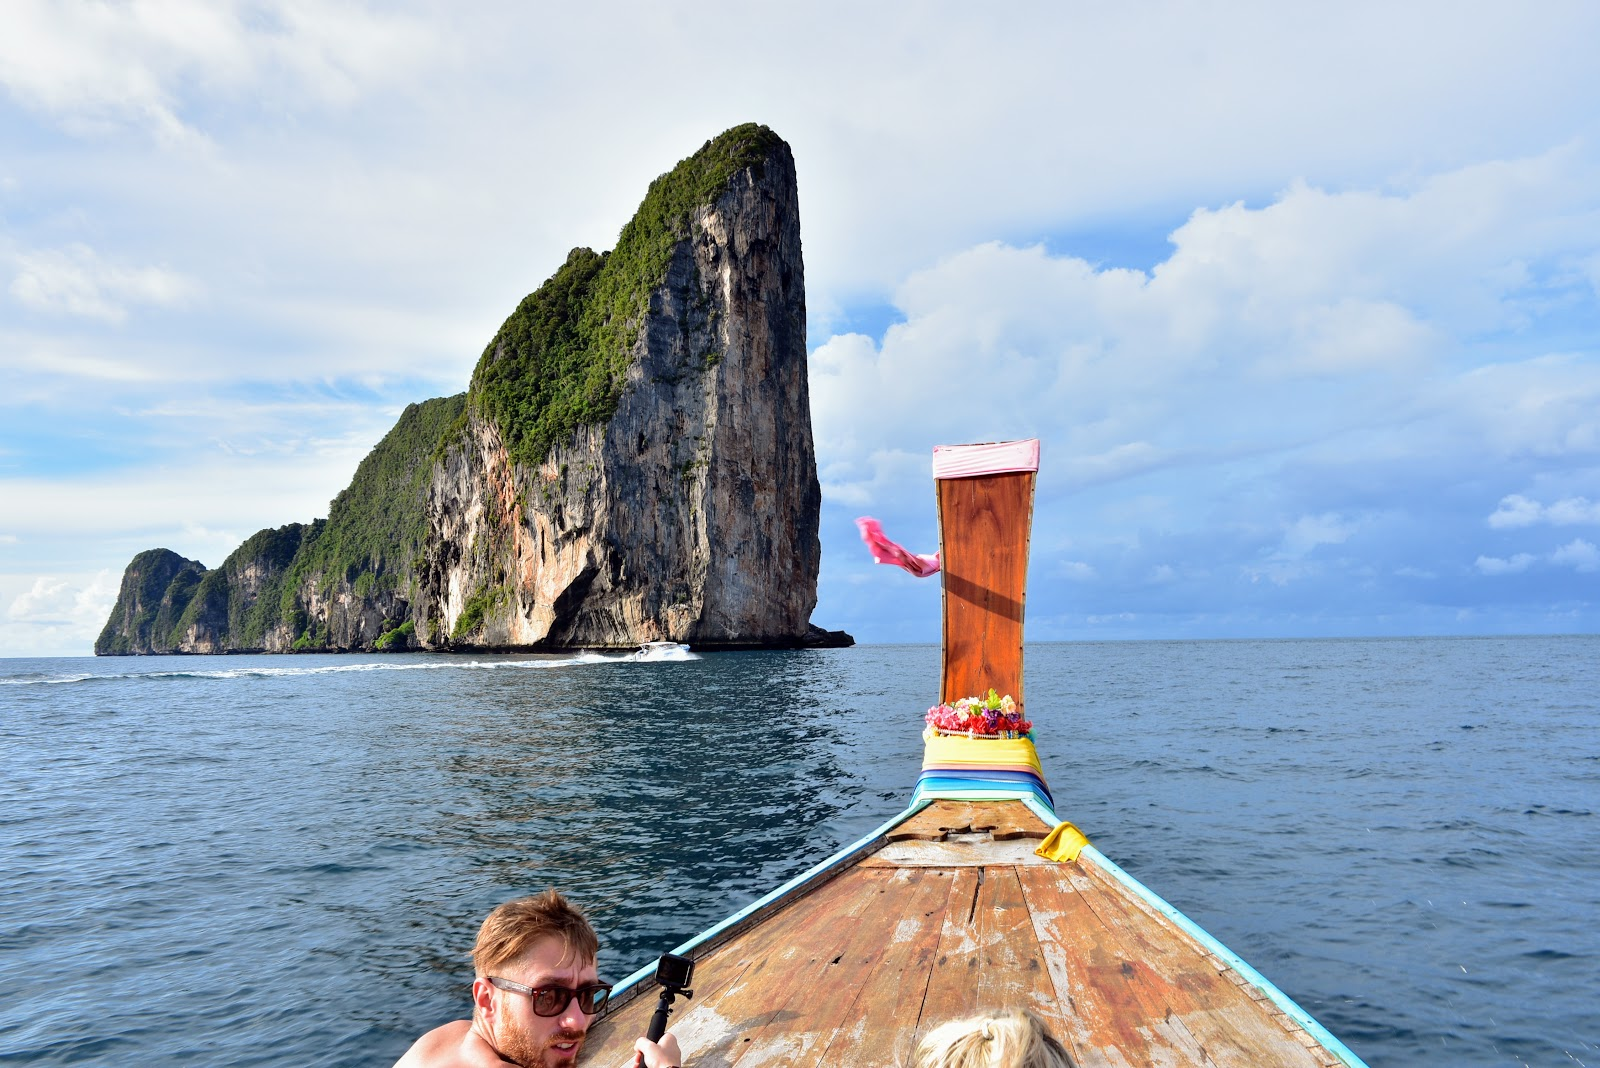 One Day Tour to Phi Phi Leh by Longtail Boat from Phi Phi Don